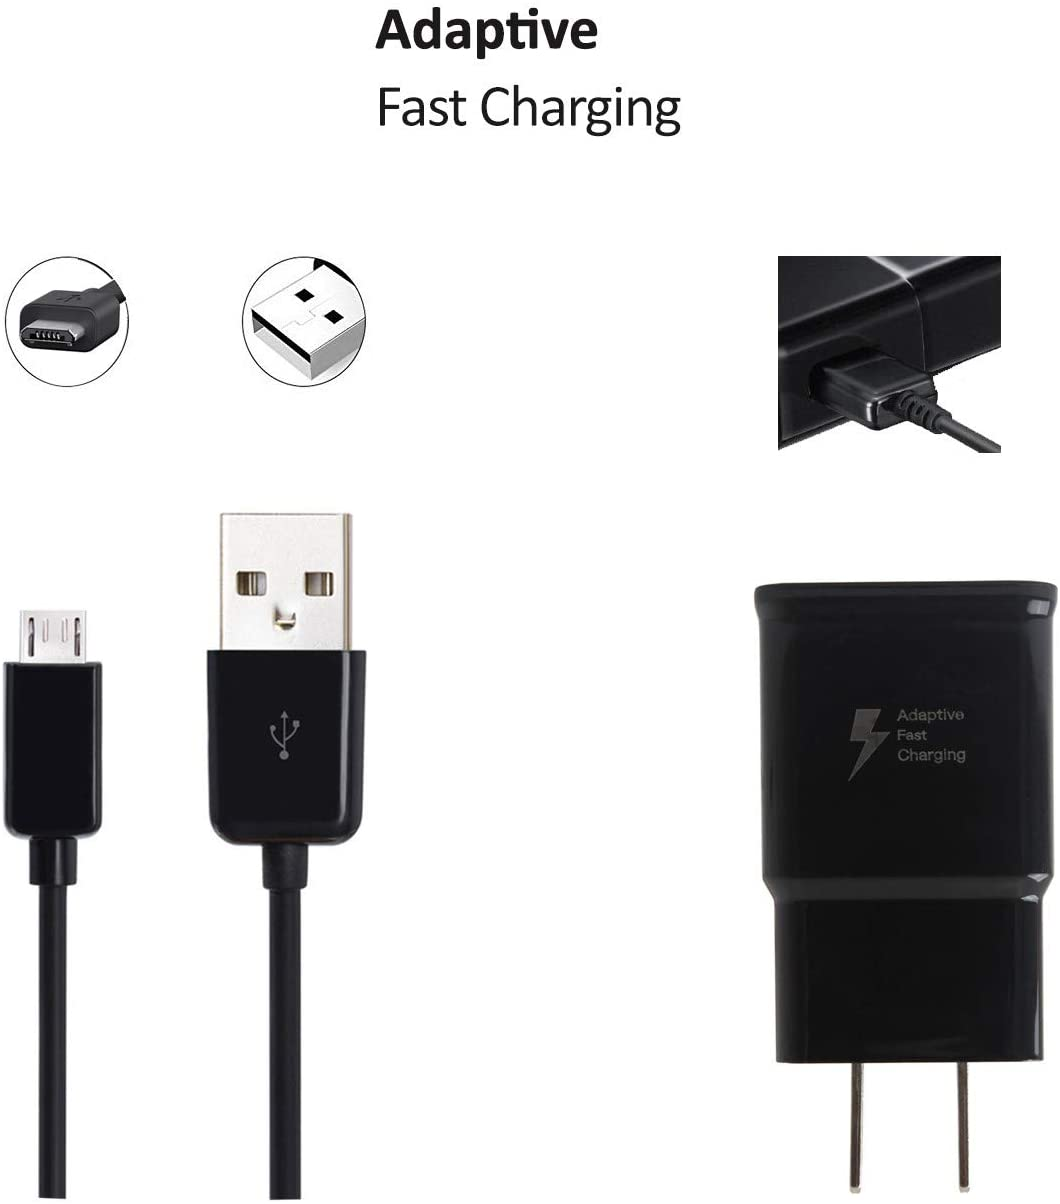 OEM Adaptive Fast Charger Compatible with Samsung Galaxy Express 3 Cell Phones [Wall Charger + 5 FT Micro USB Cable] - True Digital Adaptive Fast Charging - Black